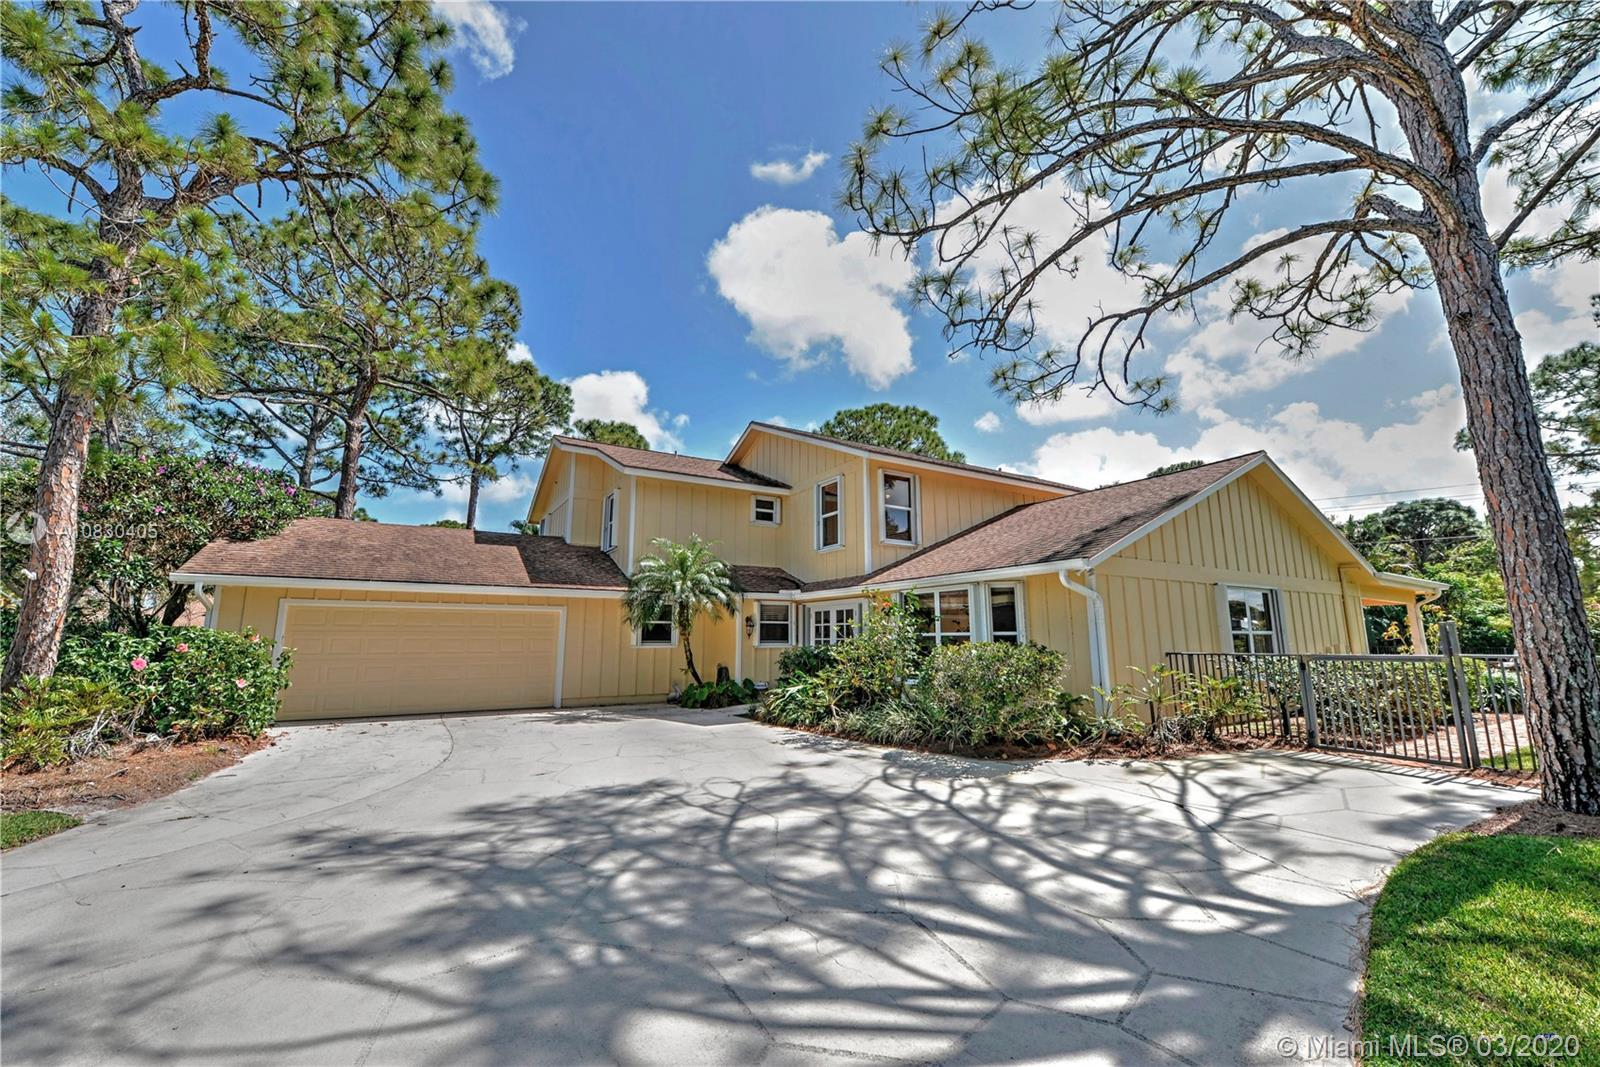 Exquiste home in the beautiful neighborhood of Whispering Trails.  Enter from the front door into a